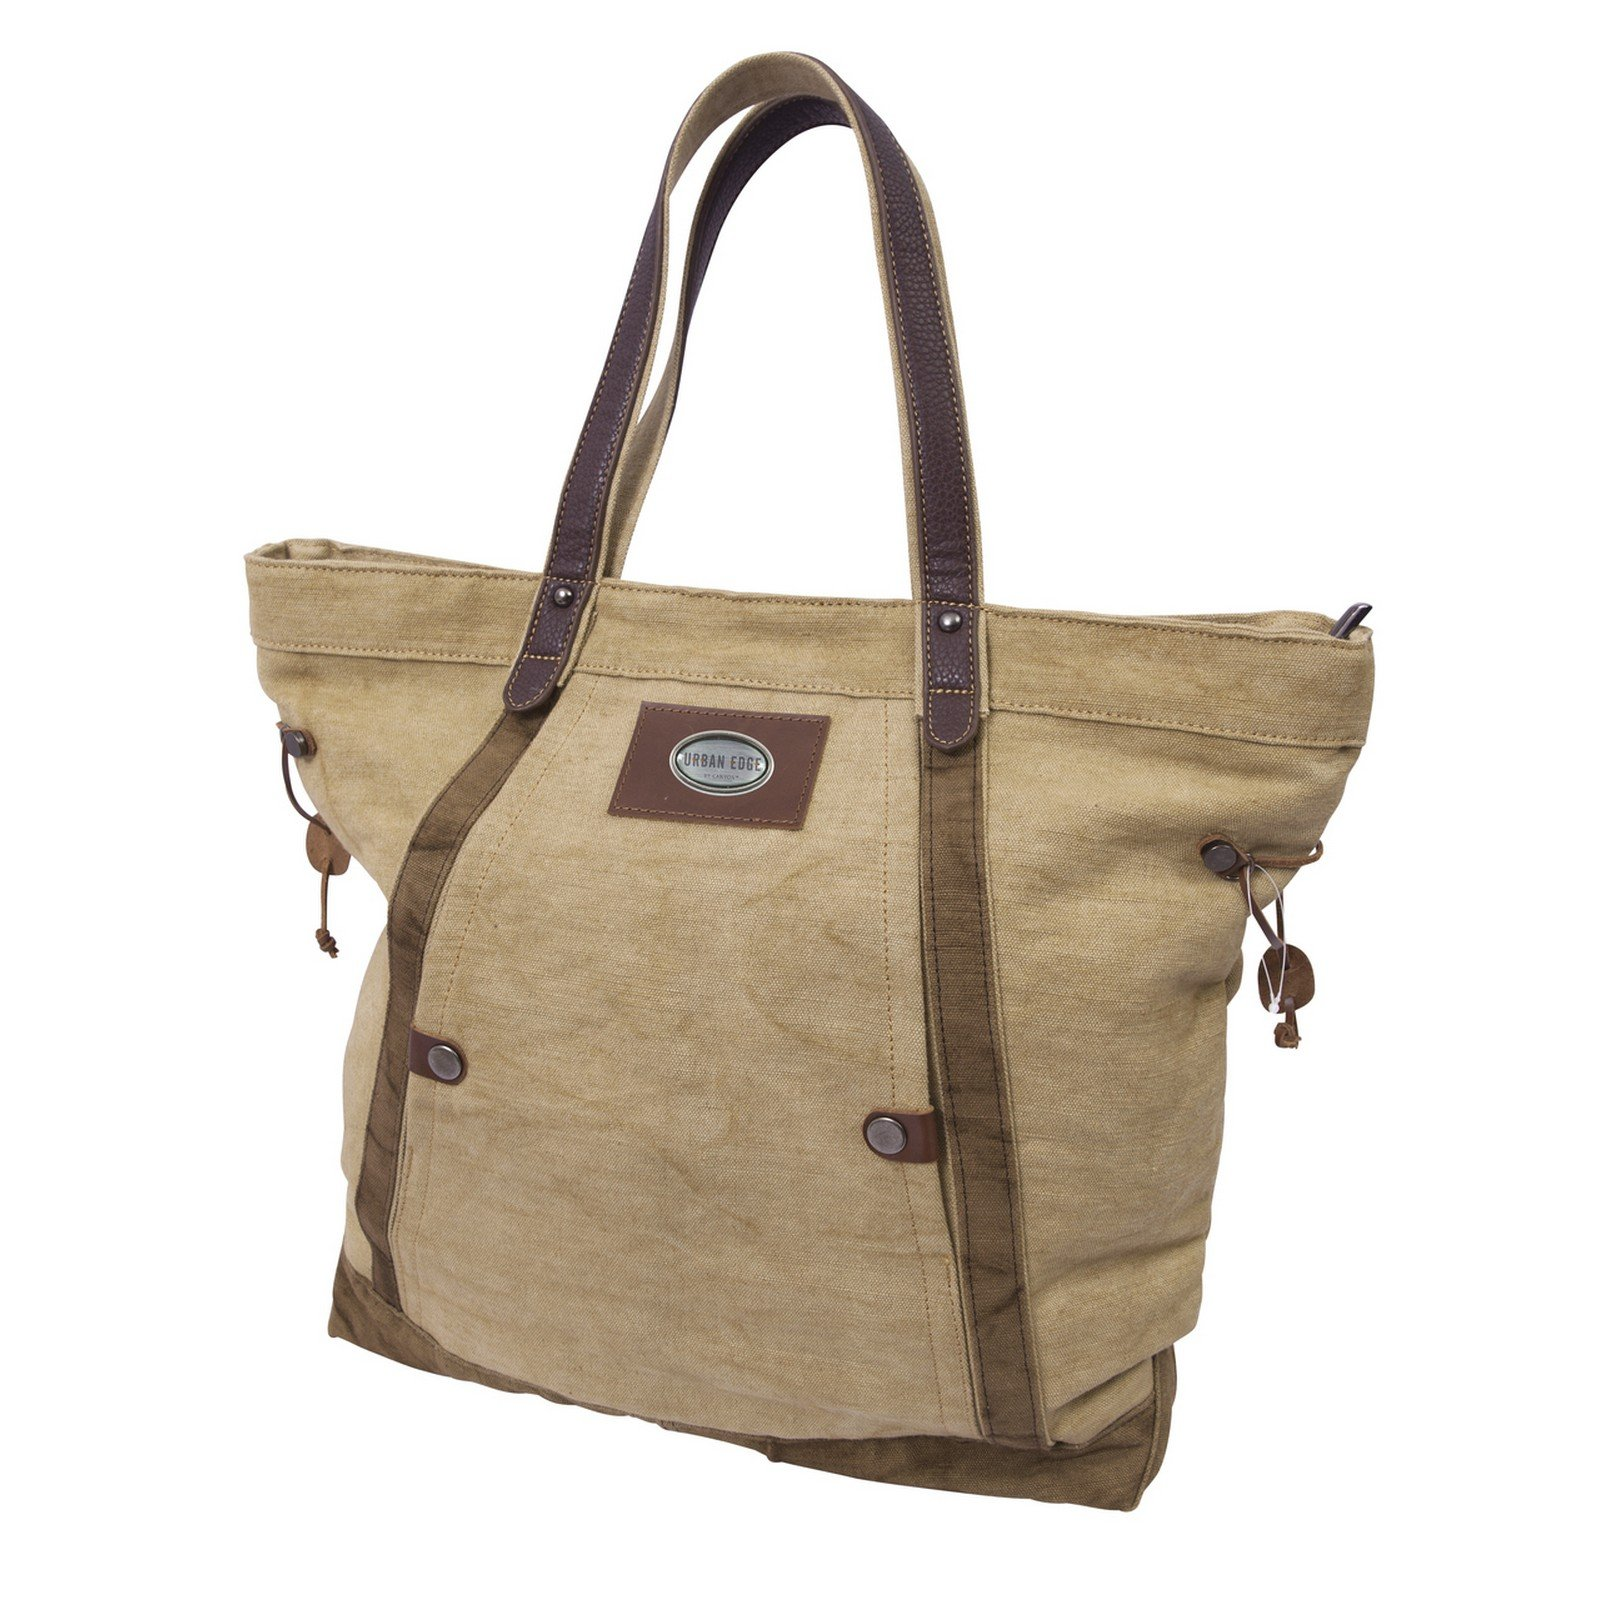 Canyon Outback Urban Edge Ashton 19-Inch Linen Tote Bag, Beige, One Size